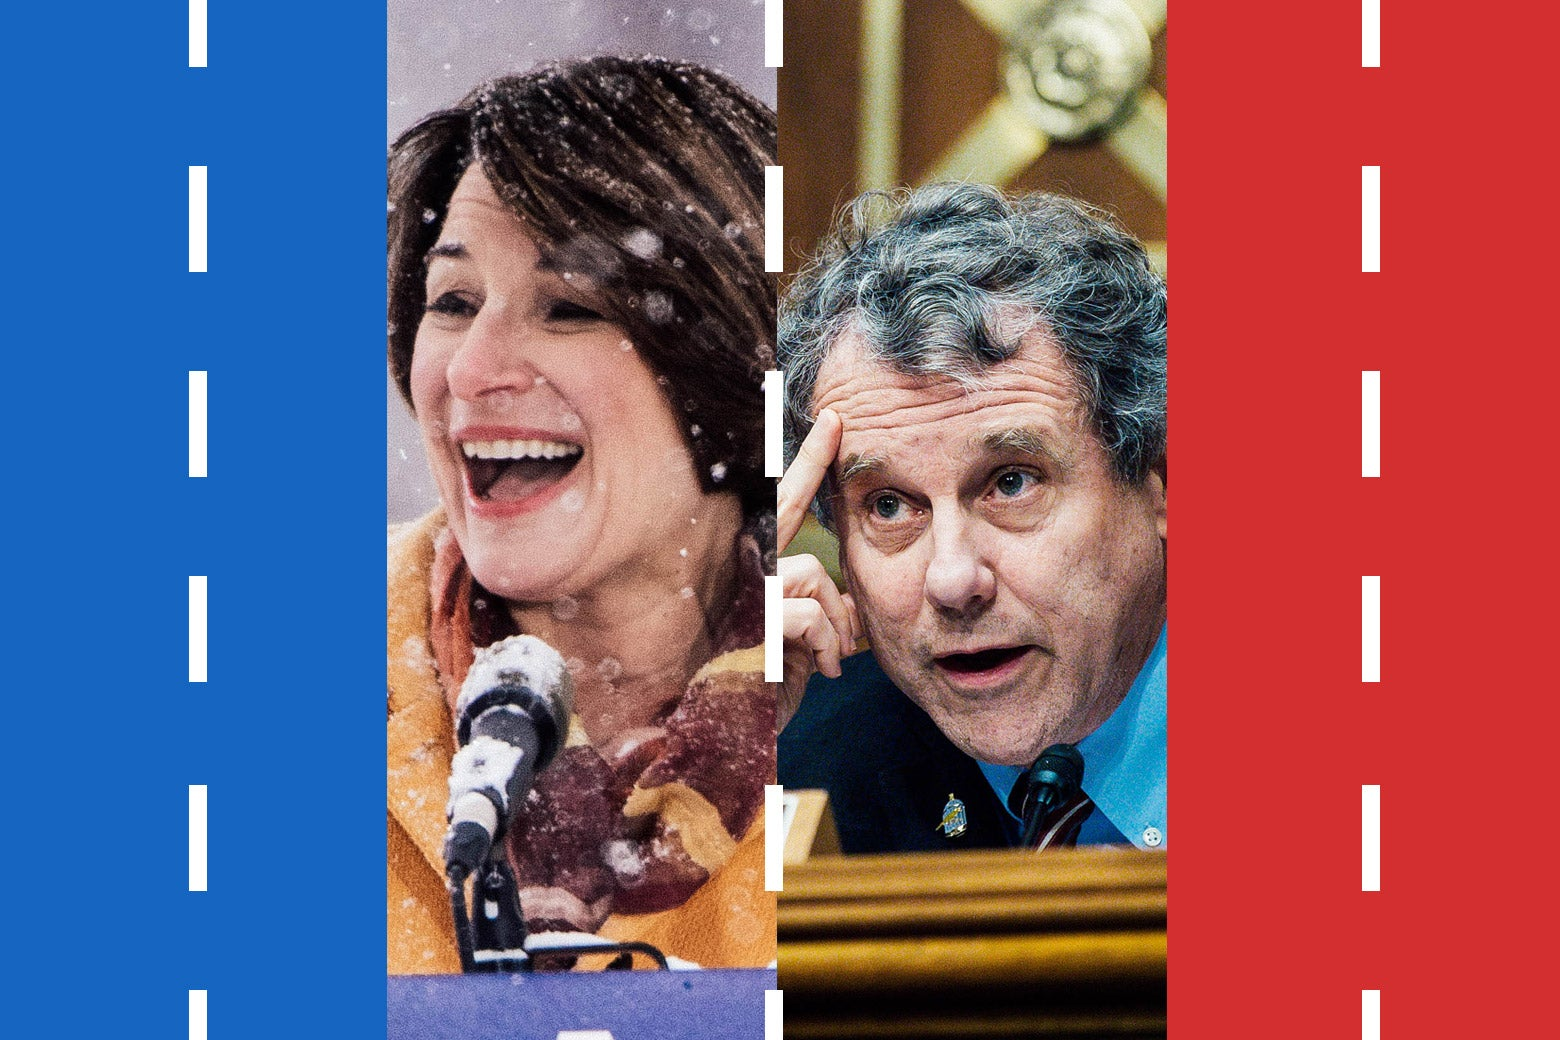 Amy Klobuchar and Sherrod Brown, flanked by a blue lane of traffic on the left and a red lane of traffic on the right.